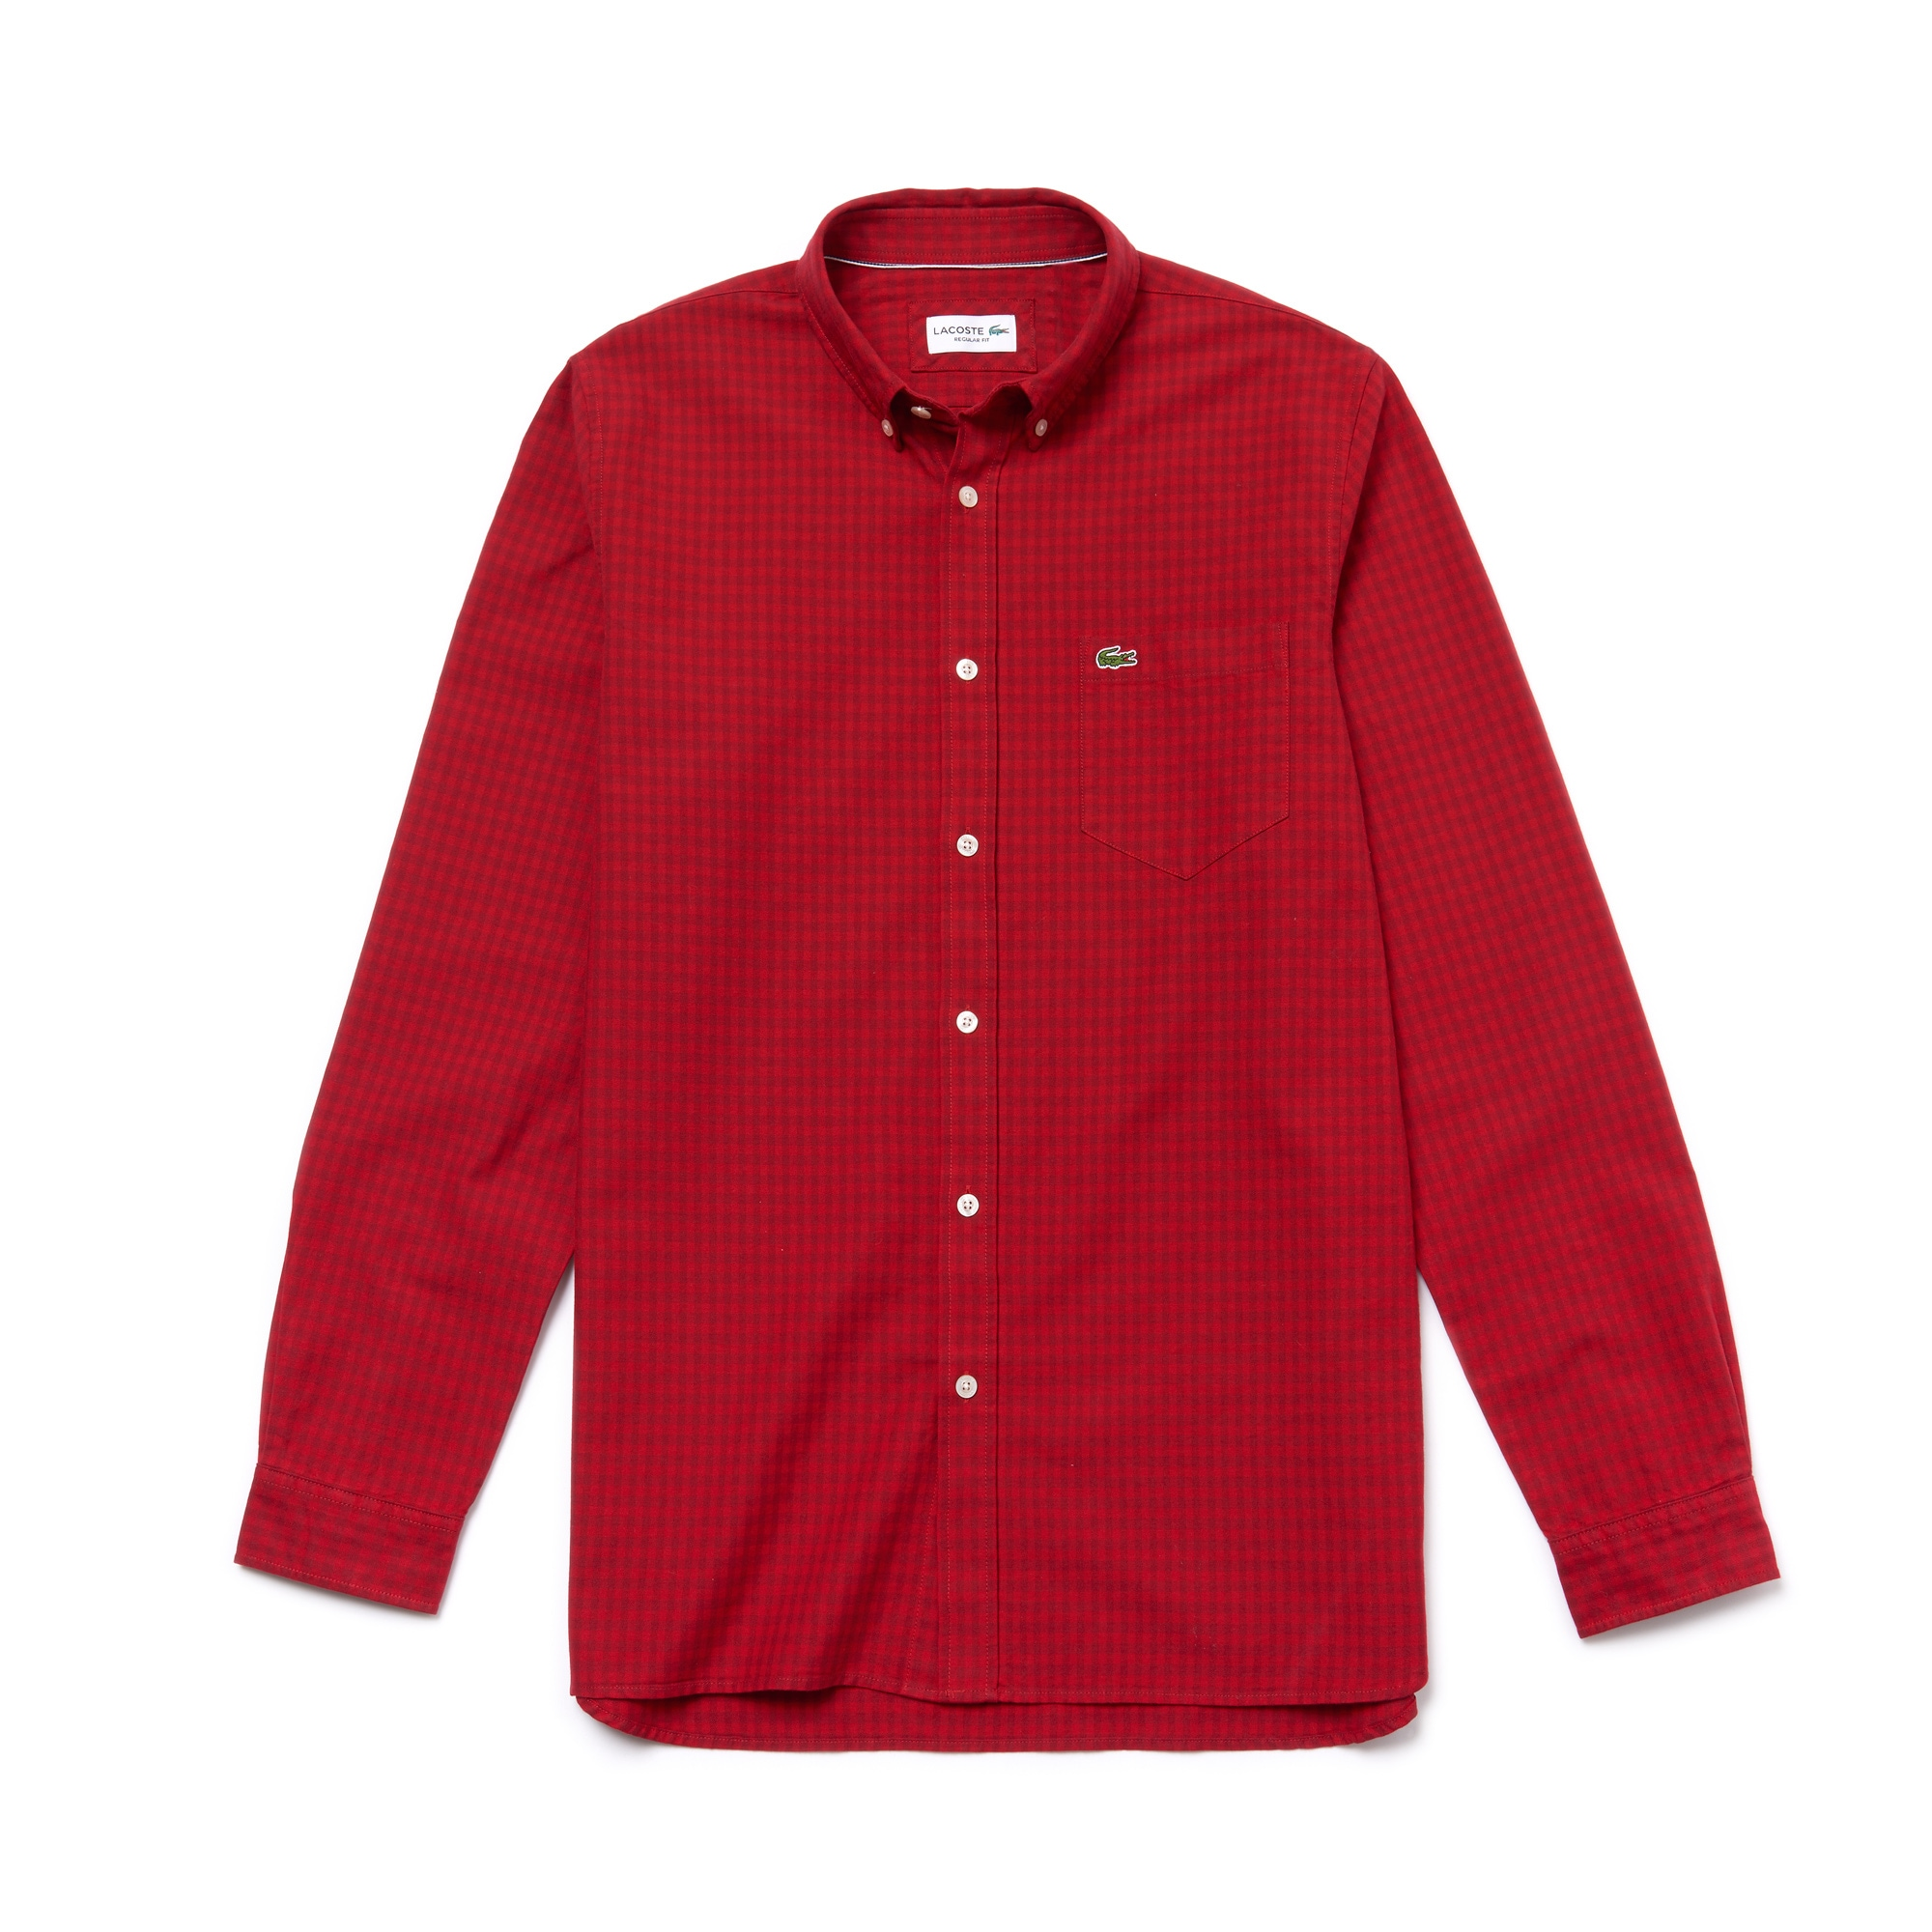 Men's Regular Fit Gingham Oxford Cotton Shirt